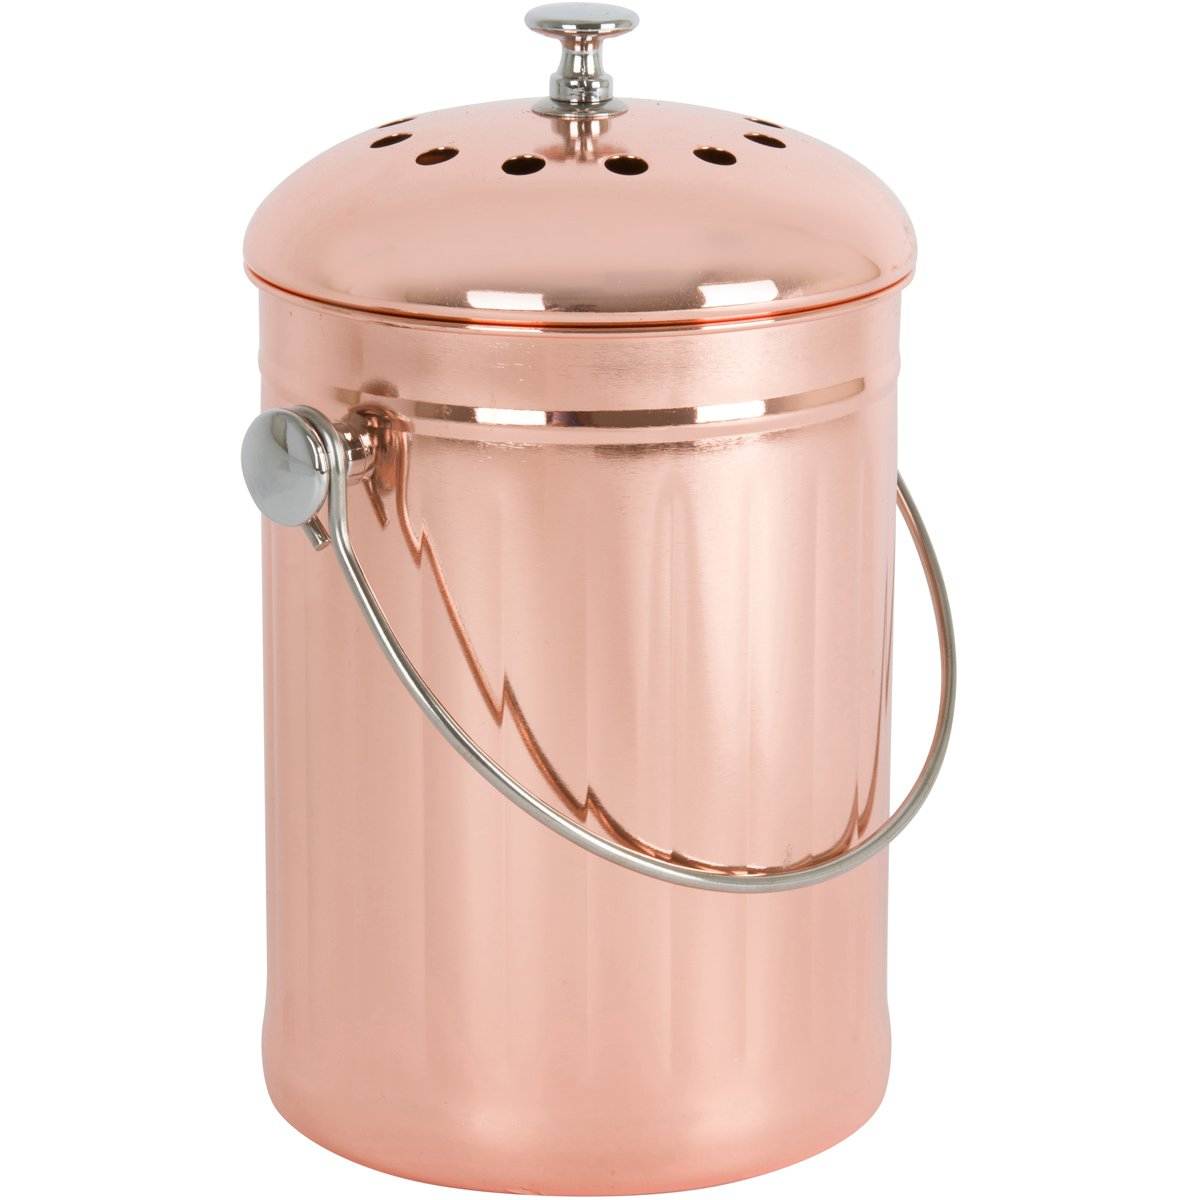 Copper-Plated Stainless Steel Kitchen Compost Bin With Two